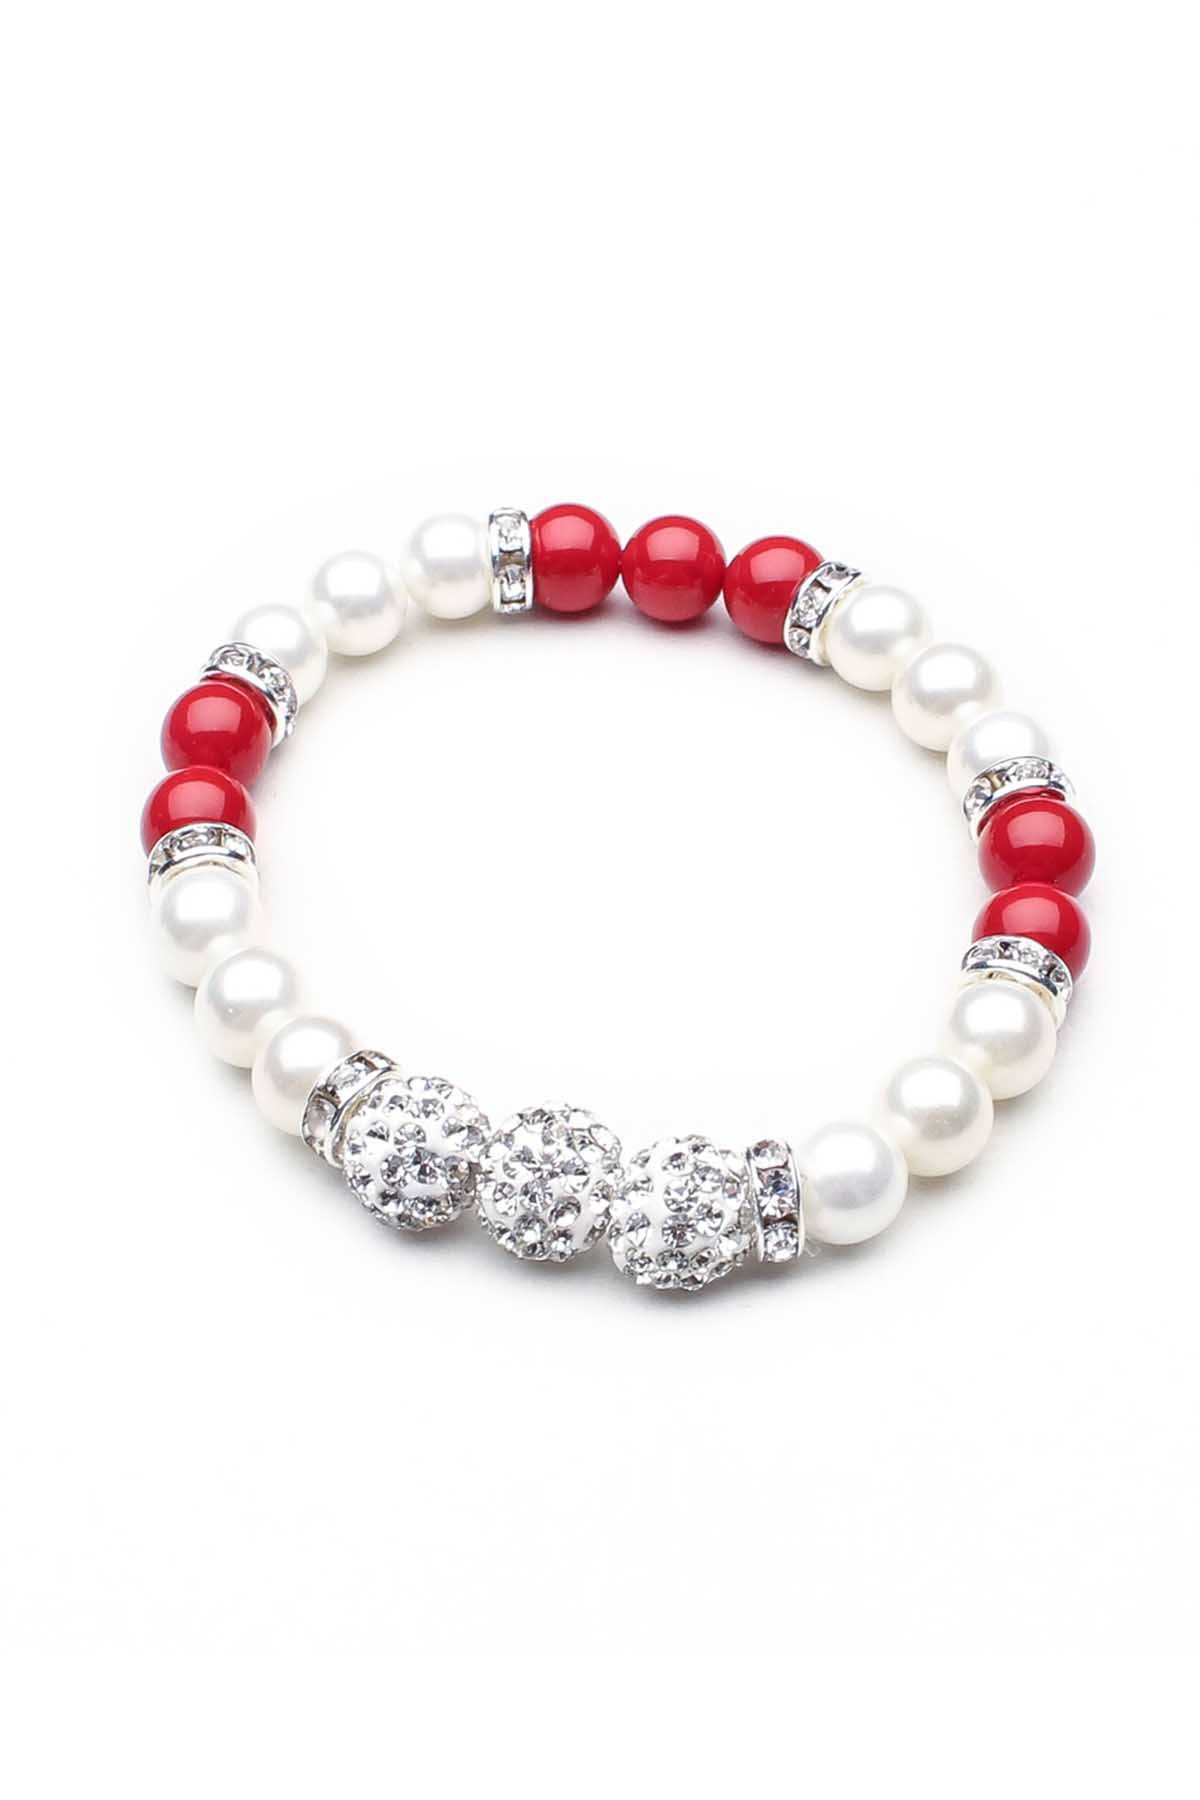 Something Strong White/Red Rhinestone/Faux-Pearl Beaded Bracelet